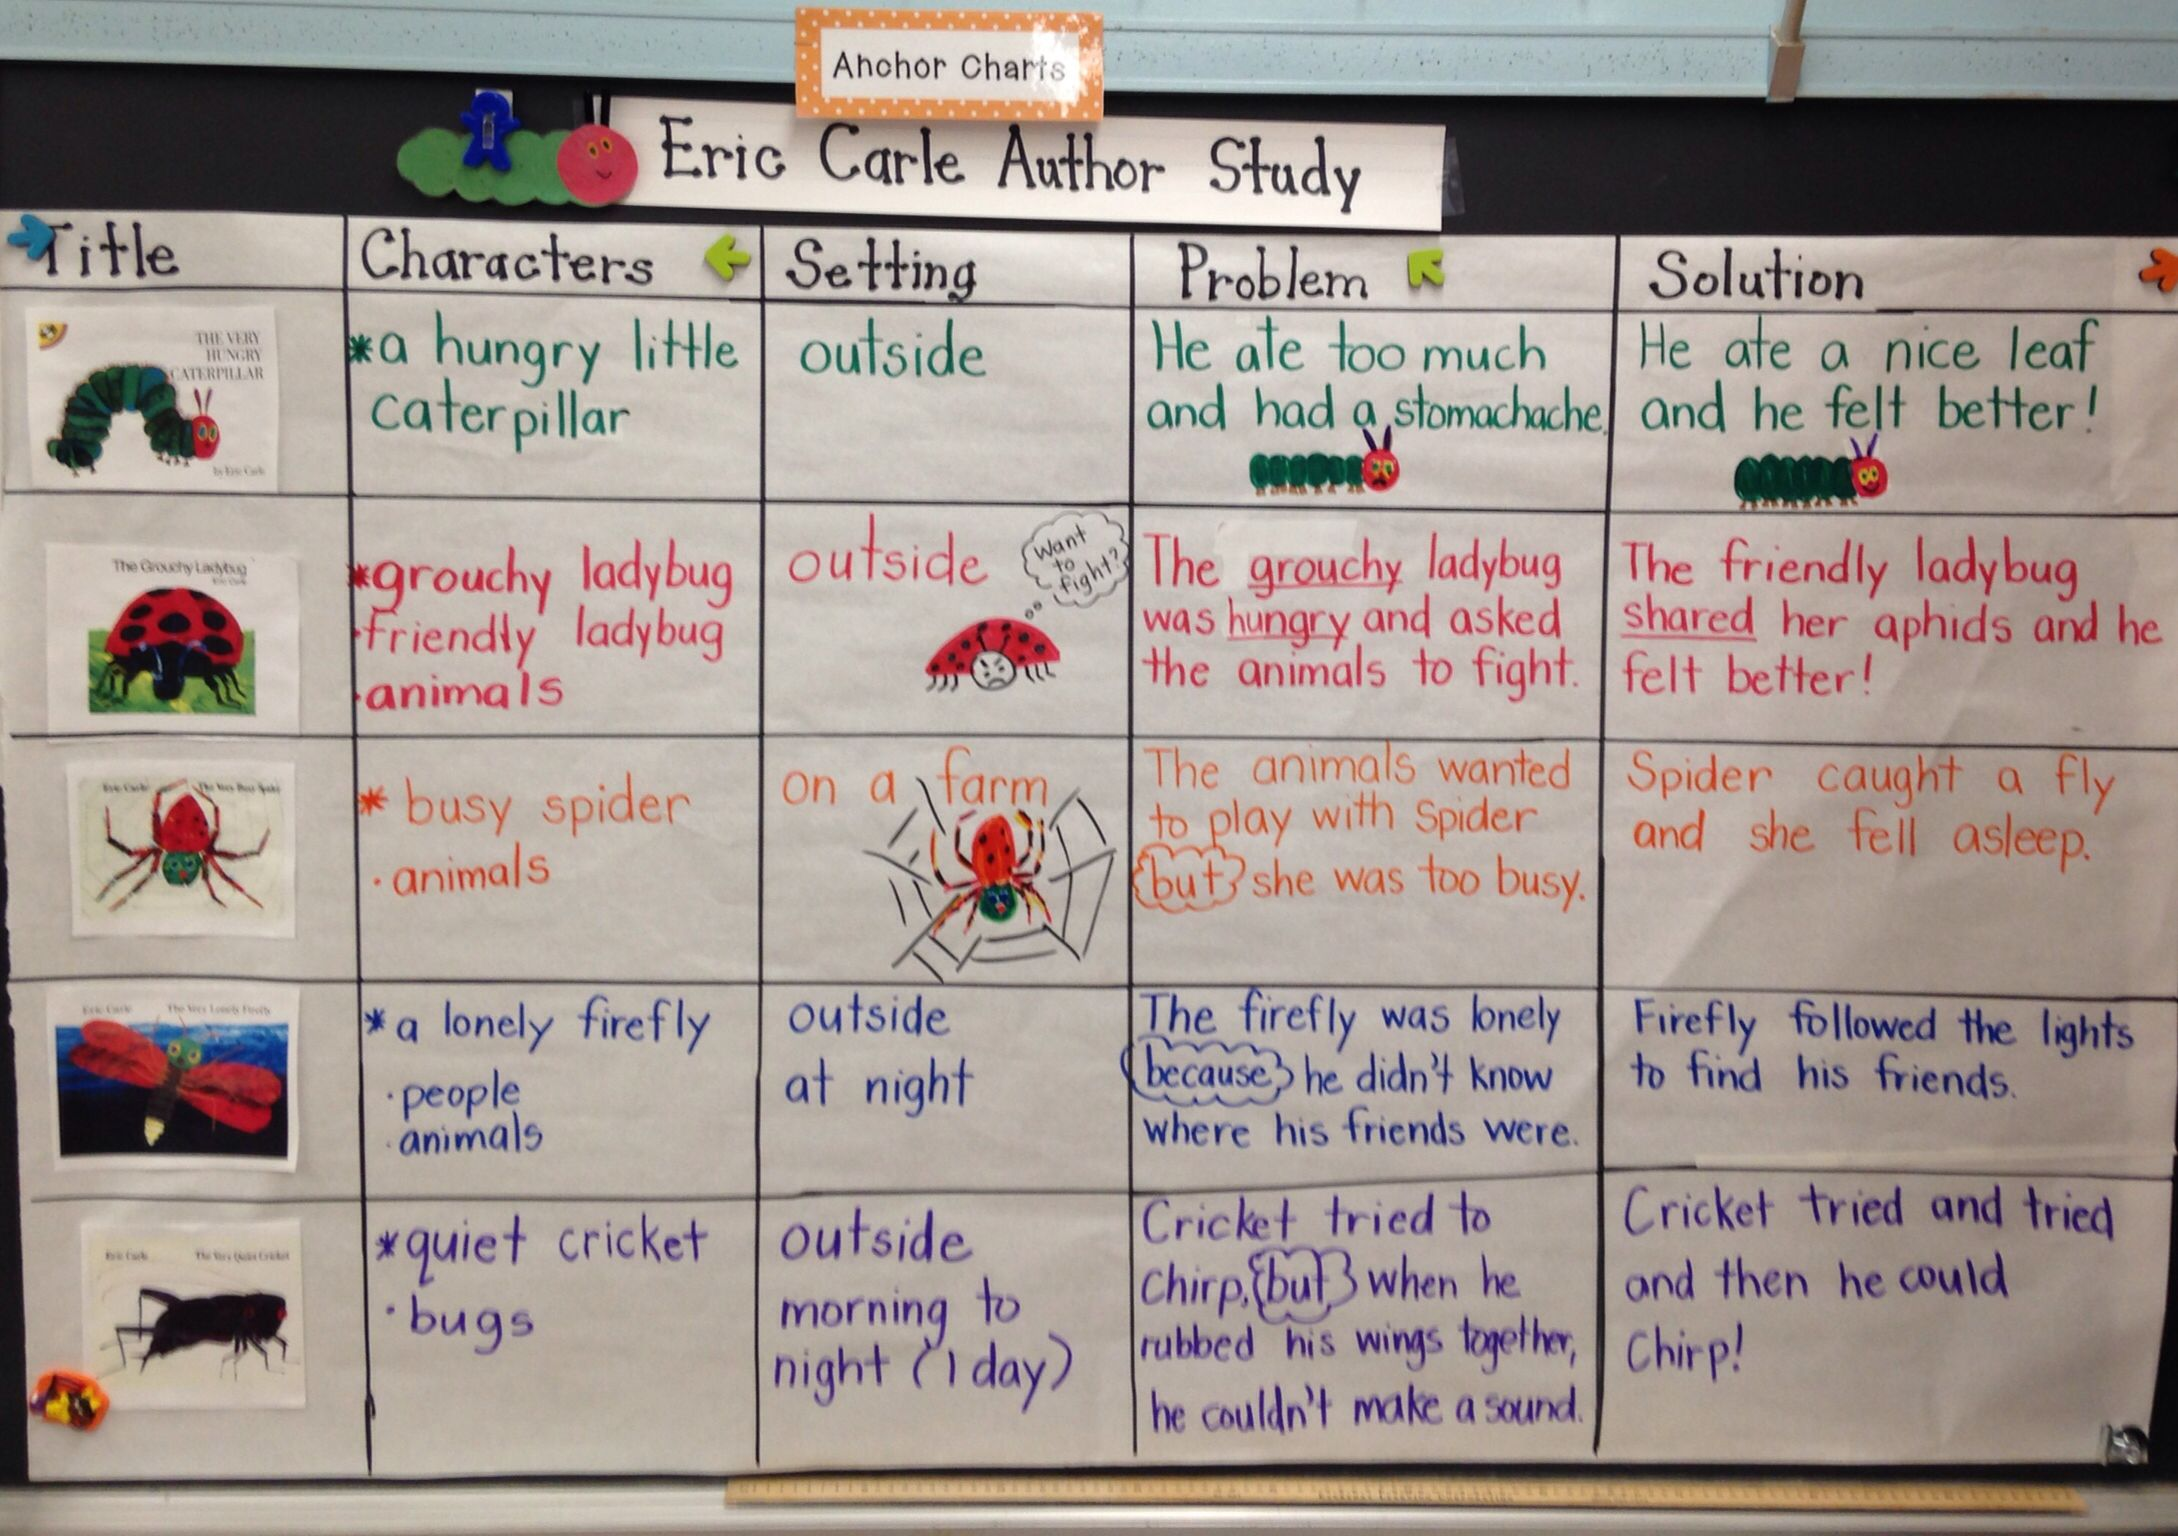 Eric Carle Author Study Board